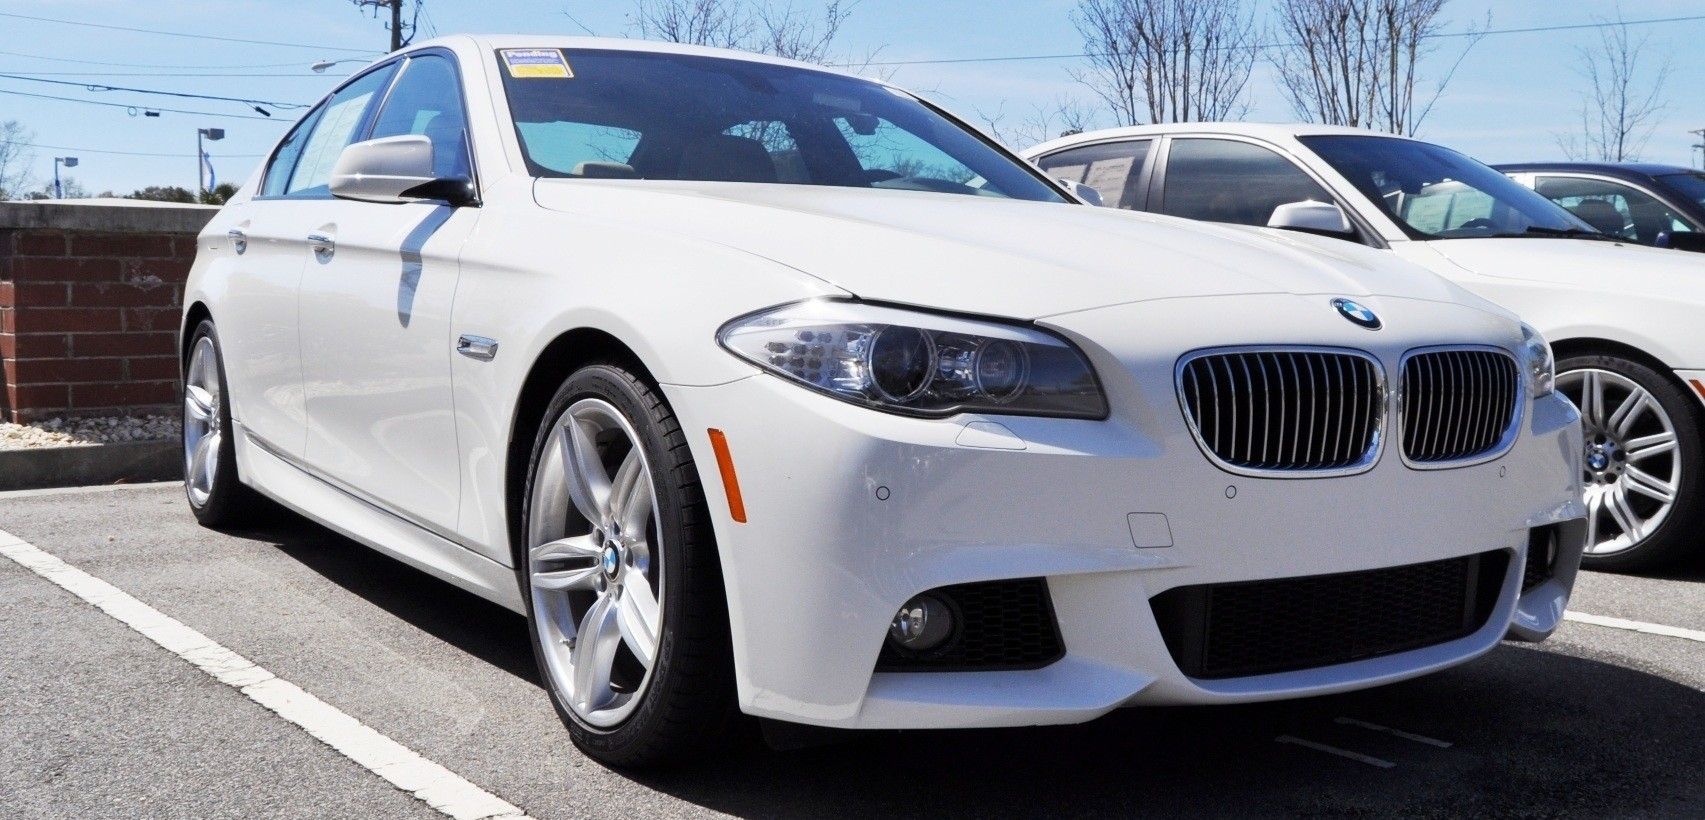 HD Video Road Test -- 2013 BMW 535i M Sport RWD -- Refined but Still Balanced, FAST and Posh 8